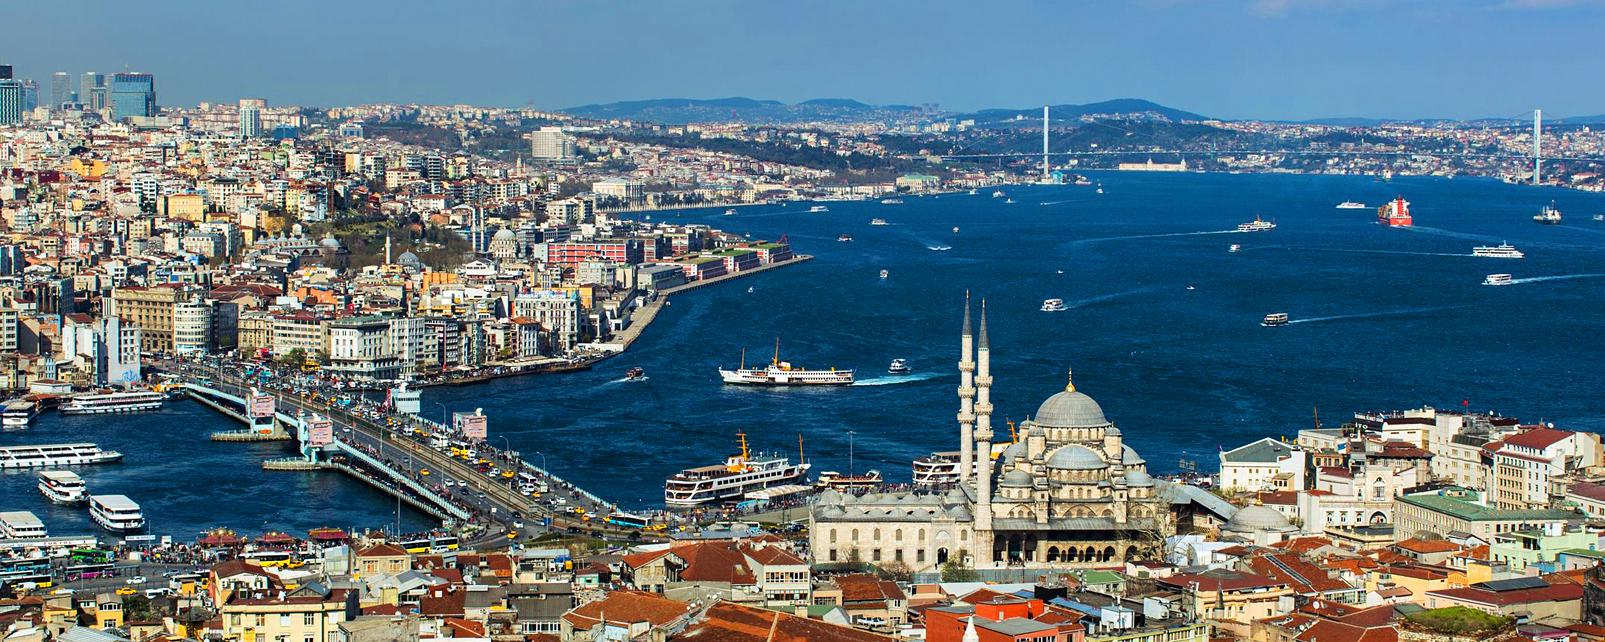 HQ Istanbul  Wallpapers | File 271.24Kb